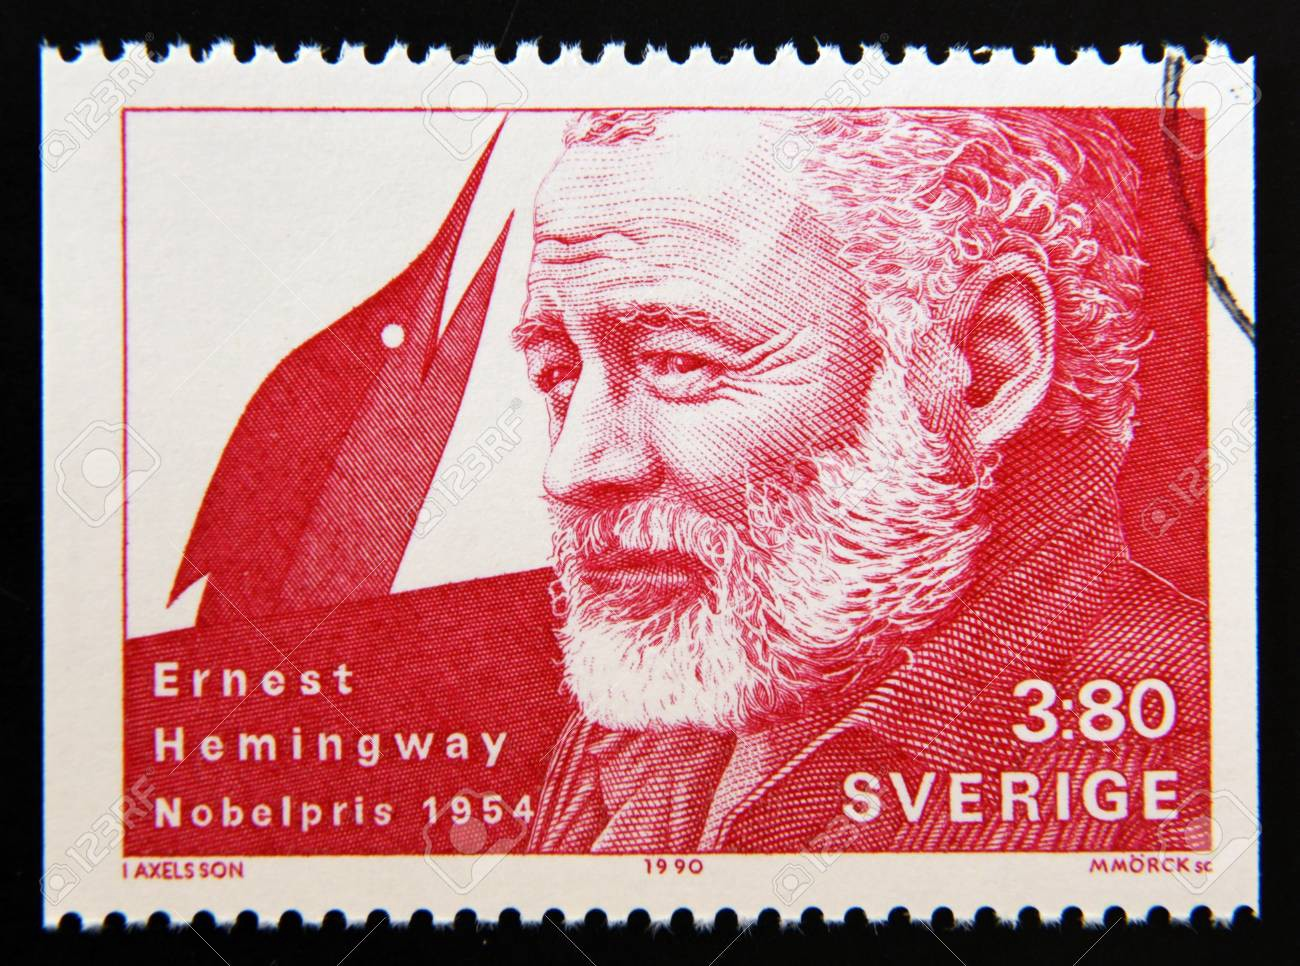 Ernest Hemingway Is Awarded The Nobel Prize For Literature October 1954 Damn Signature Male White Hd Red 123rfcom